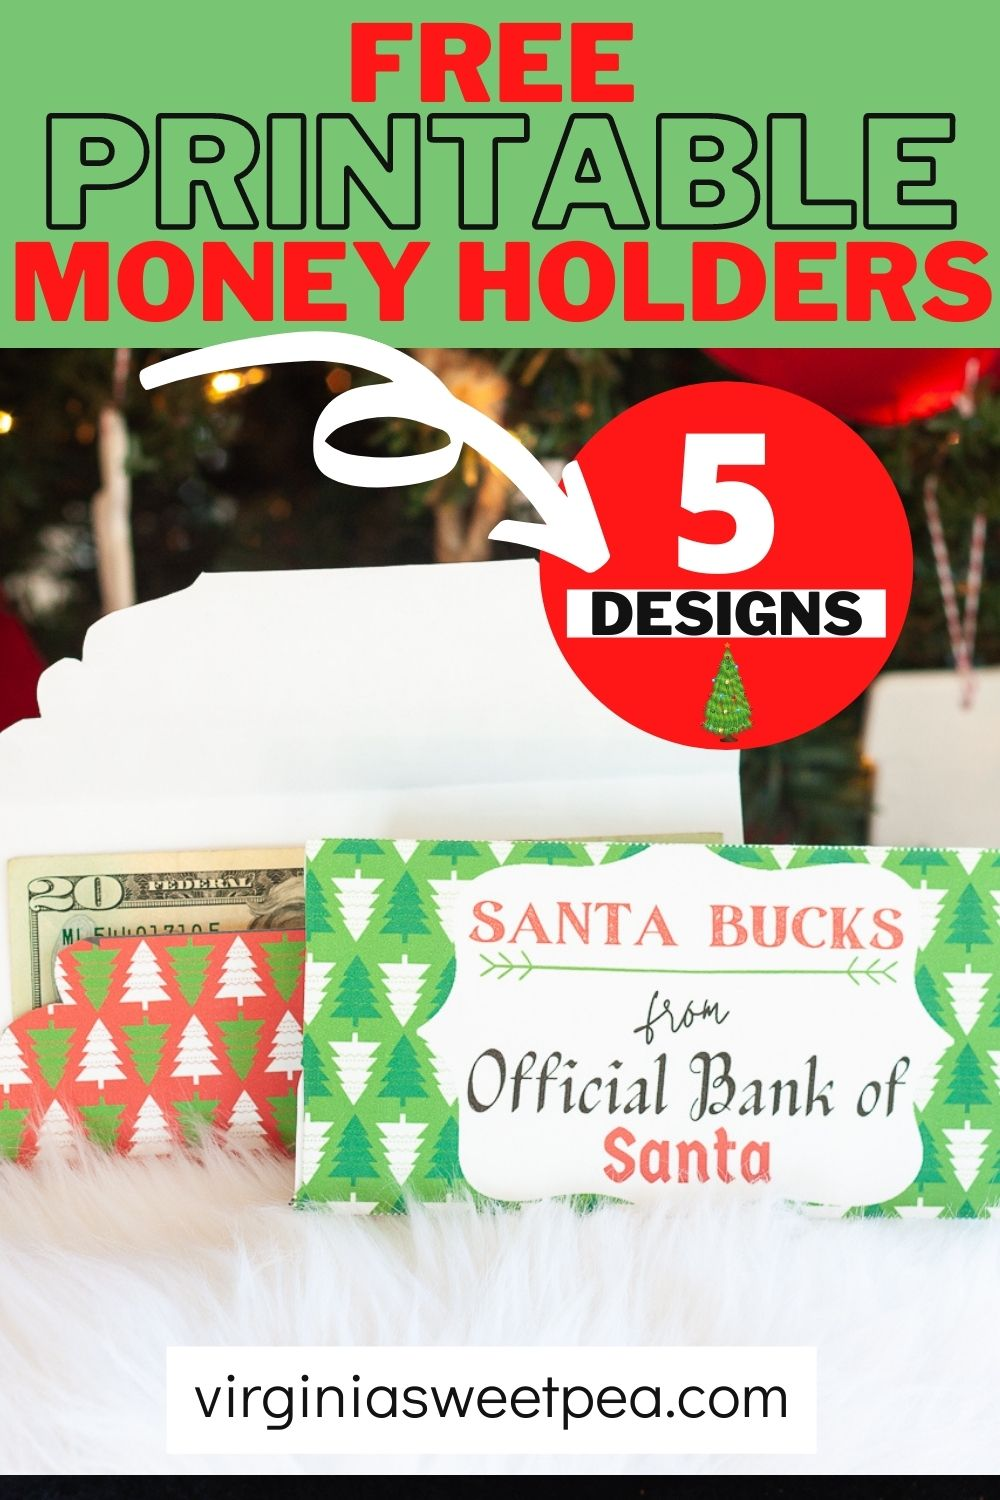 Free Printable Money Holders for Christmas - Make cash or a gift card extra special by giving it in an adorable Santa Bucks money holder.  5 free printable version are available! via @spaula